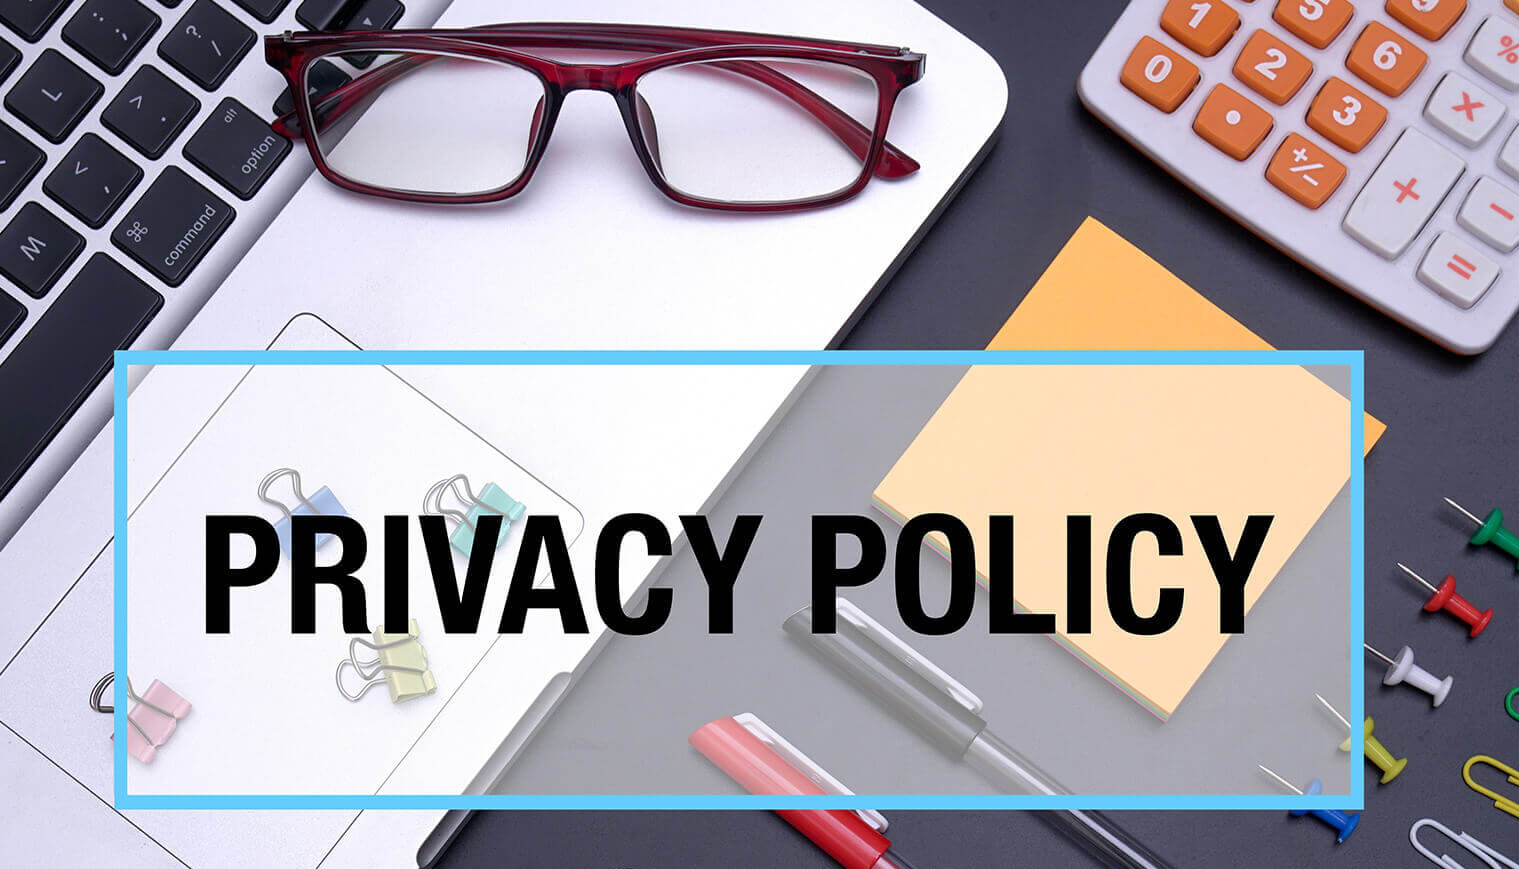 Data Privacy  - AYPiH1561724754 - 6 Data Privacy Policy that Every Organization Should Follow in 2019